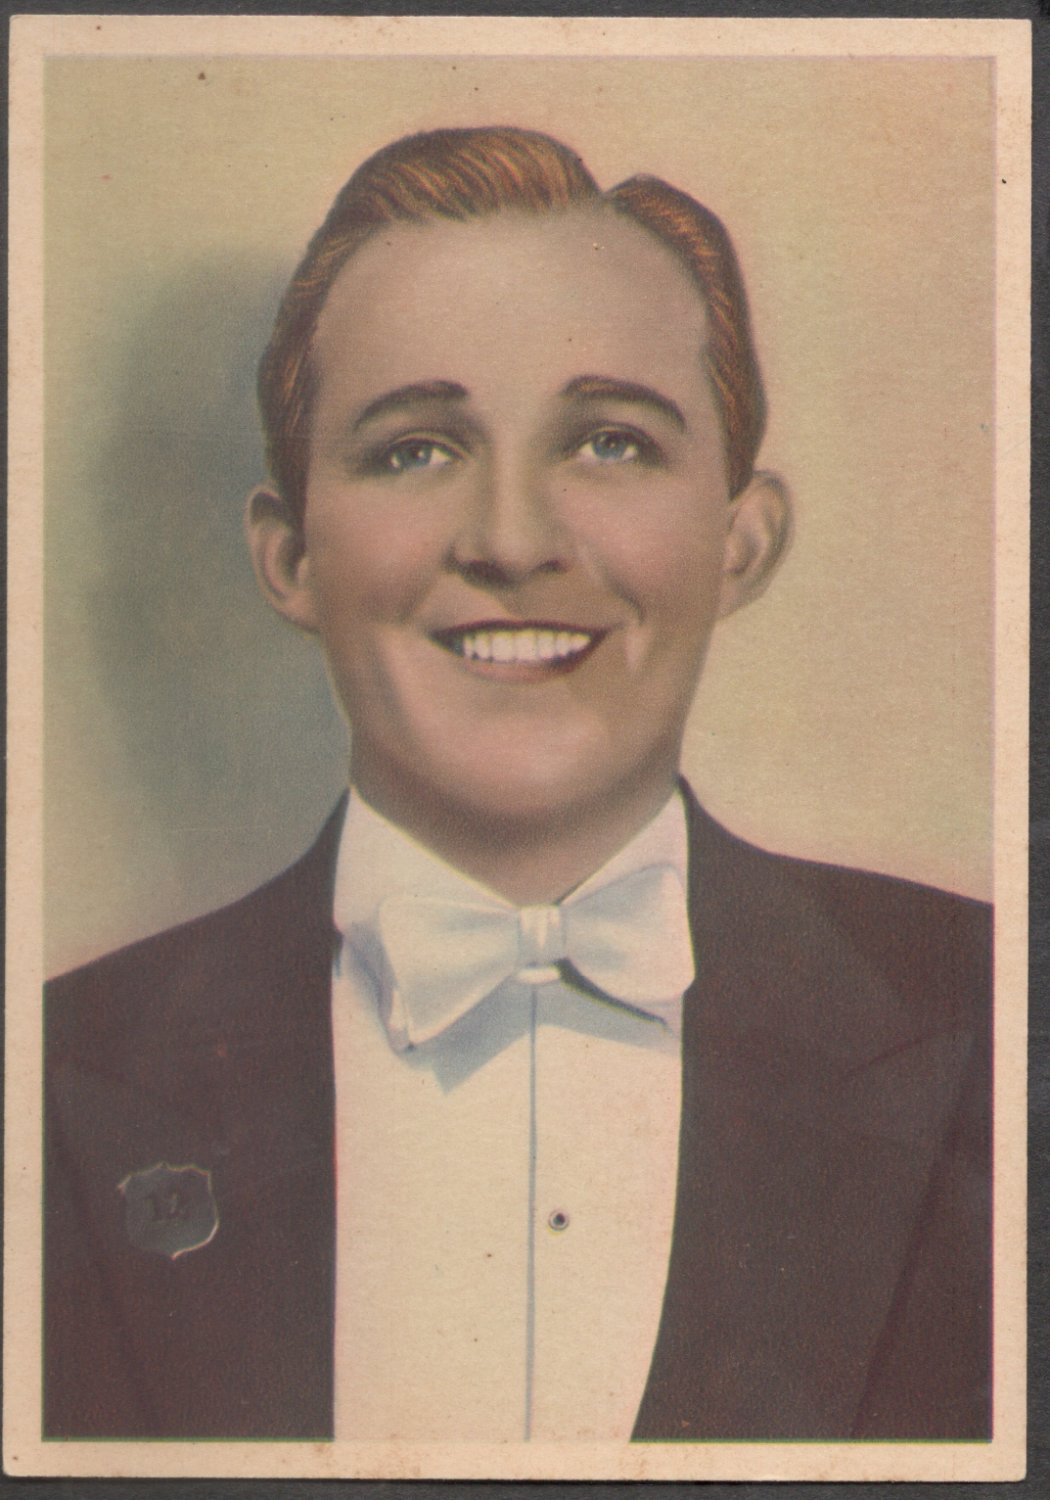 GODFREY PHILLIPS Bing Crosby MINT CARD